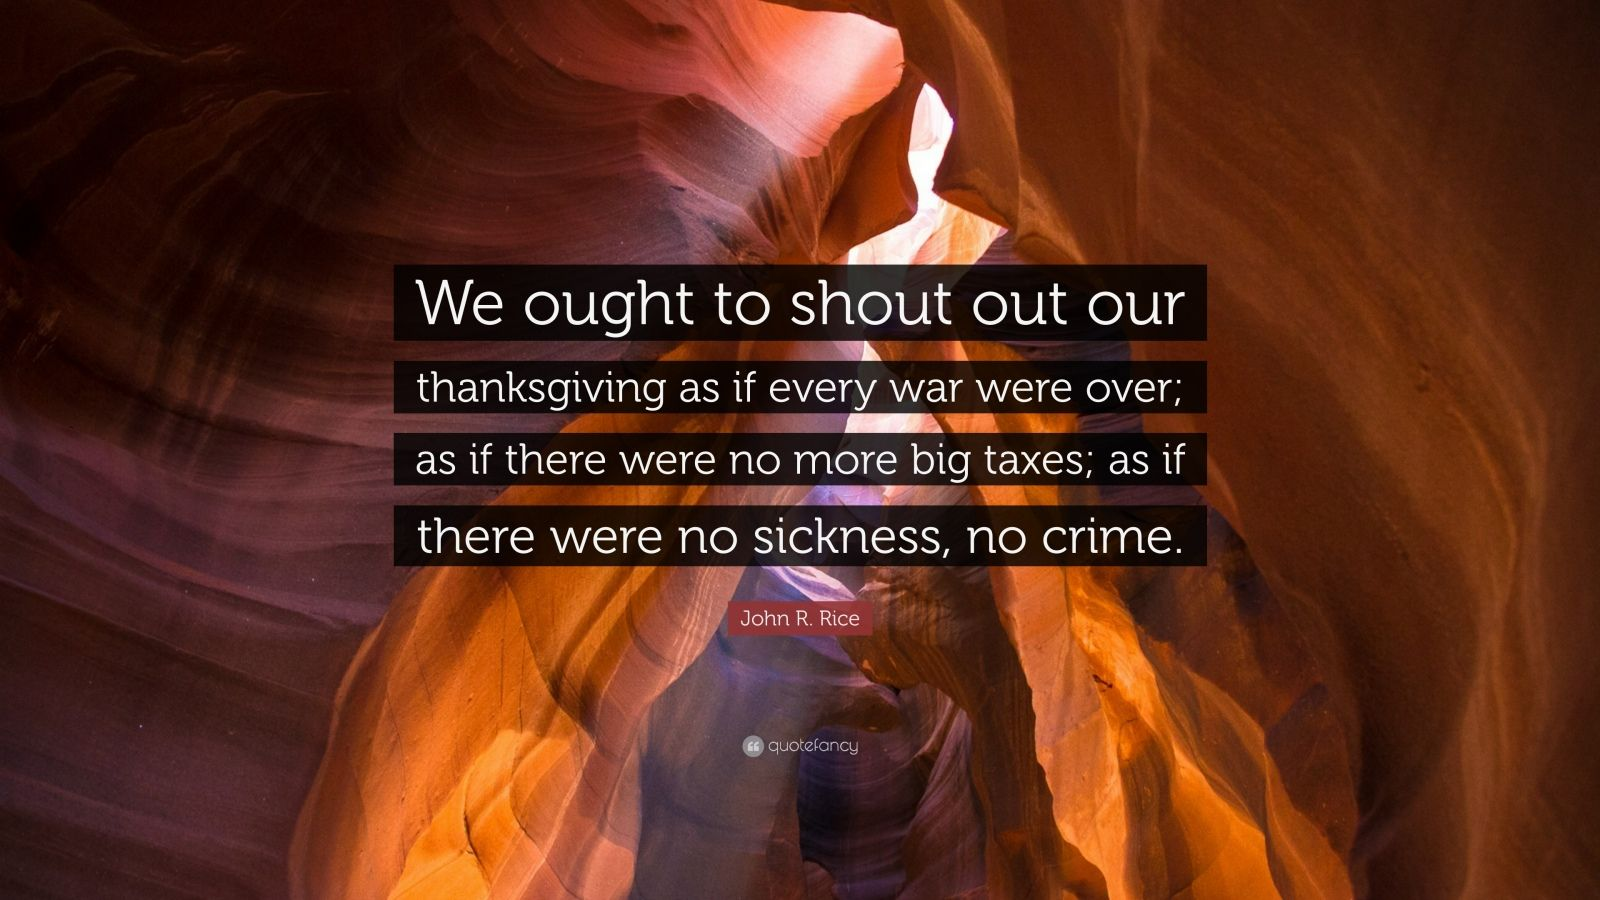 """John R. Rice Quote: """"We ought to shout out our thanksgiving as if every war were over; as if there were no more big taxes; as if there were no sickness, no crime."""""""